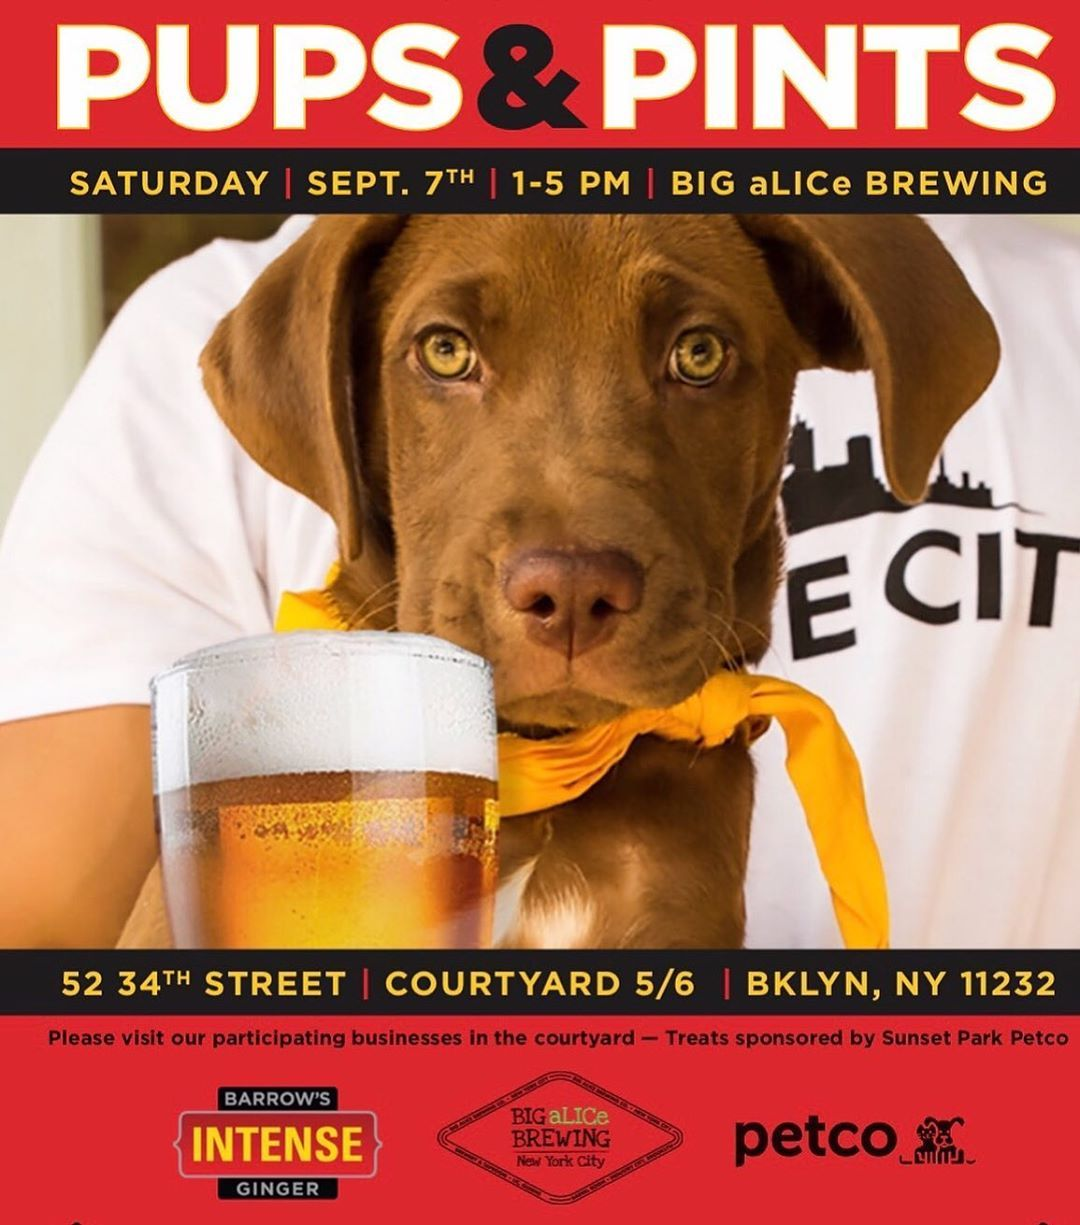 We Re Super Excited For Our First Puppies N Pints At Industrycity With Bigalicebrewing Barrowsintense And Petco Sunset Park Rsv Pup Instagram Posts Fun Drinks